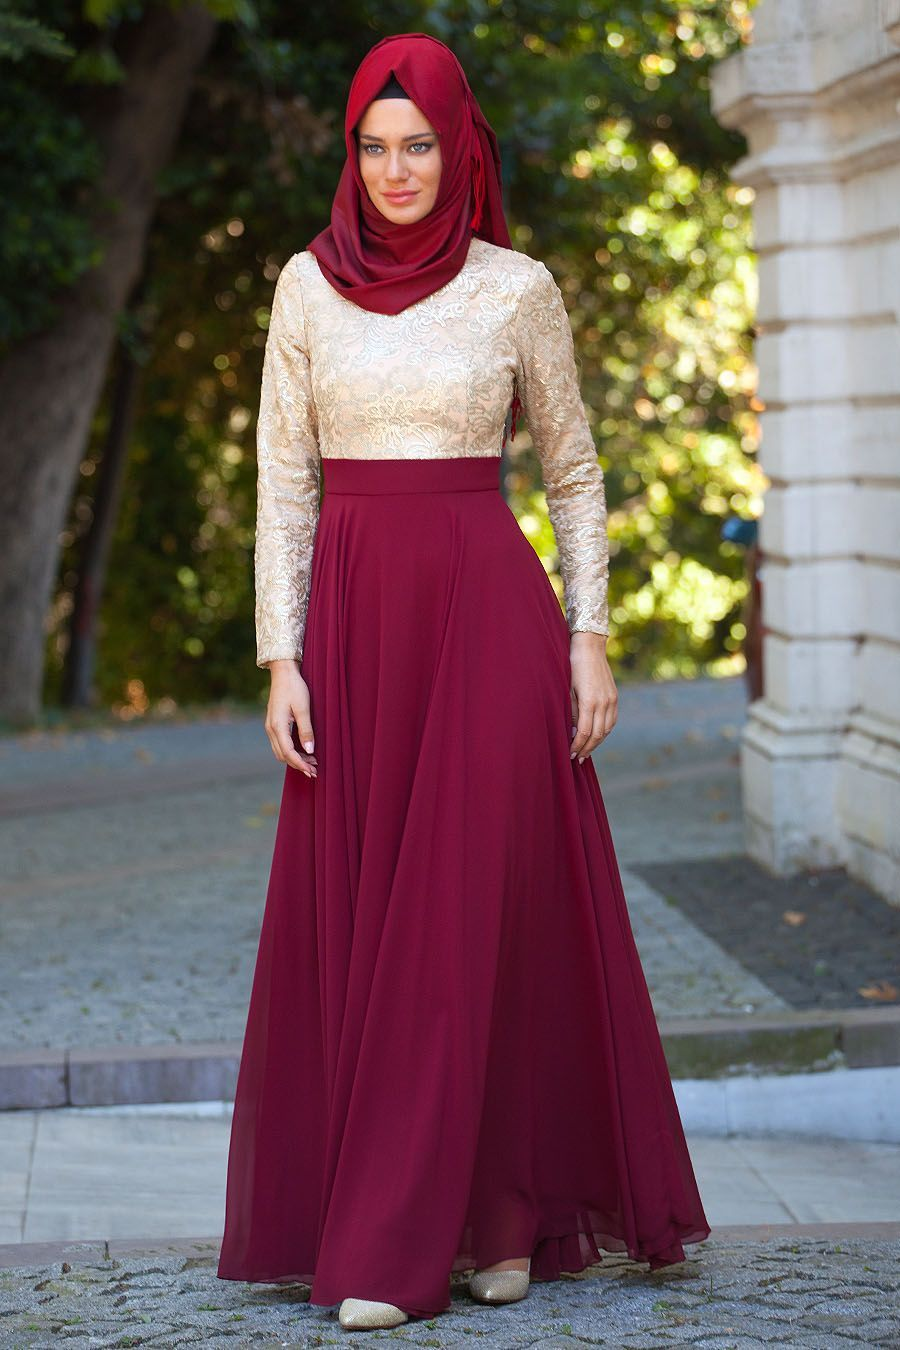 Tesetturlu Abiye Elbiseler Tesetturlu Abiye Elbise Tesettur Bayan Giyimde Elbise Ferace Esarp Sal Hasema V Evening Dress Collection Evening Dresses Dresses